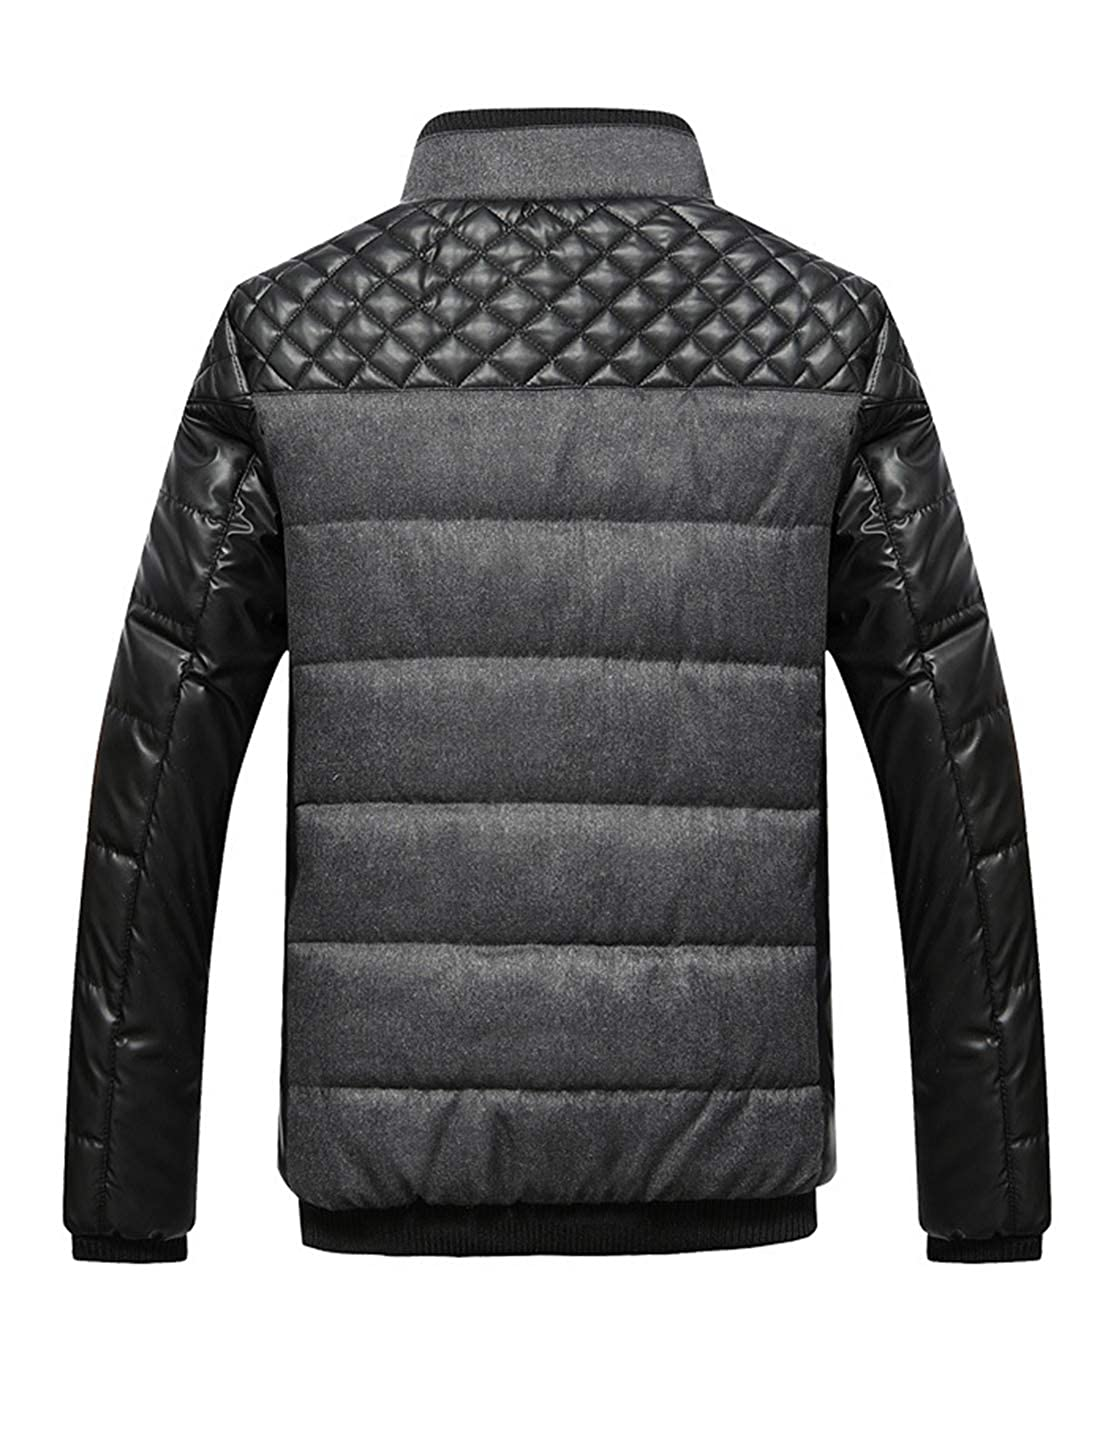 Lentta Mens Winter Warm Fleece Lined Zipper Quilted Stand Collar Jacket Coat